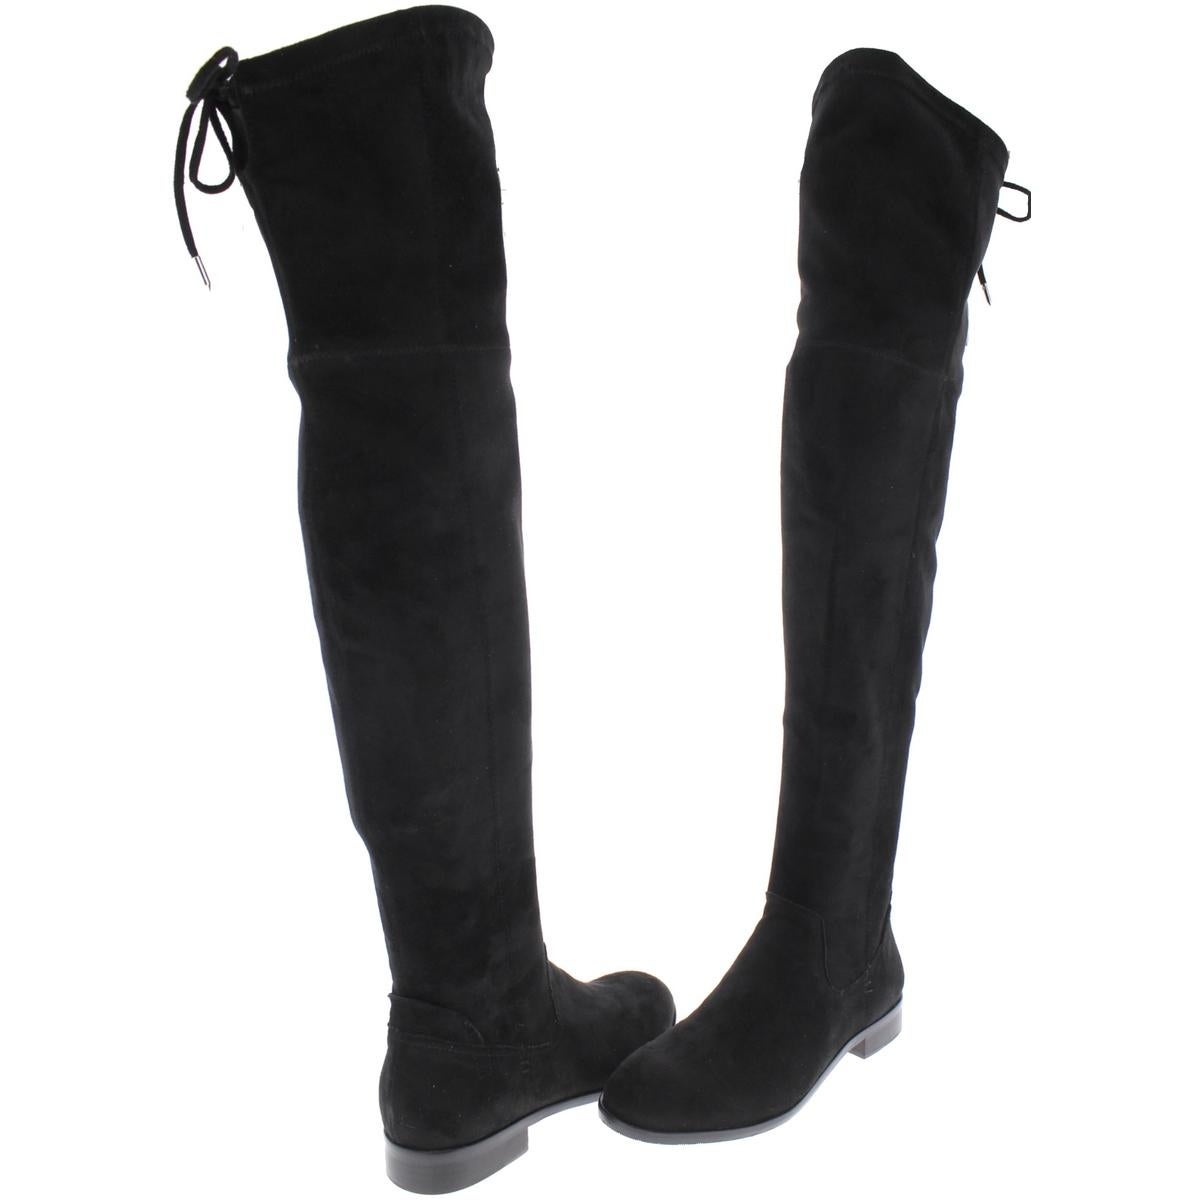 c6ce0a84b4a Shop Dolce Vita Womens Neely Over-The-Knee Boots Faux Suede Round Toe -  Free Shipping Today - - 21480765